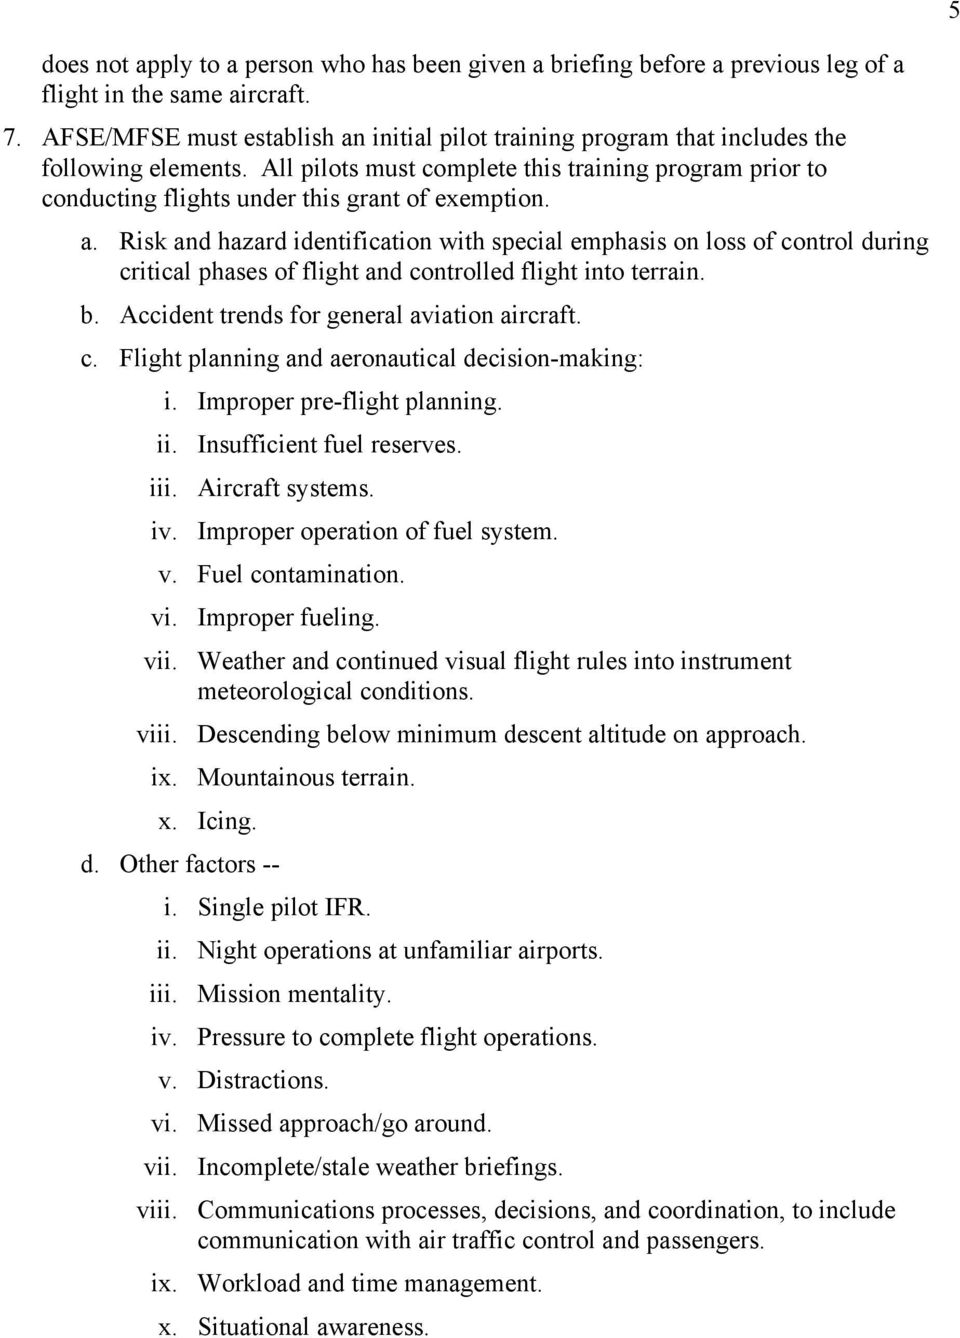 All pilots must complete this training program prior to conducting flights under this grant of exemption. a.